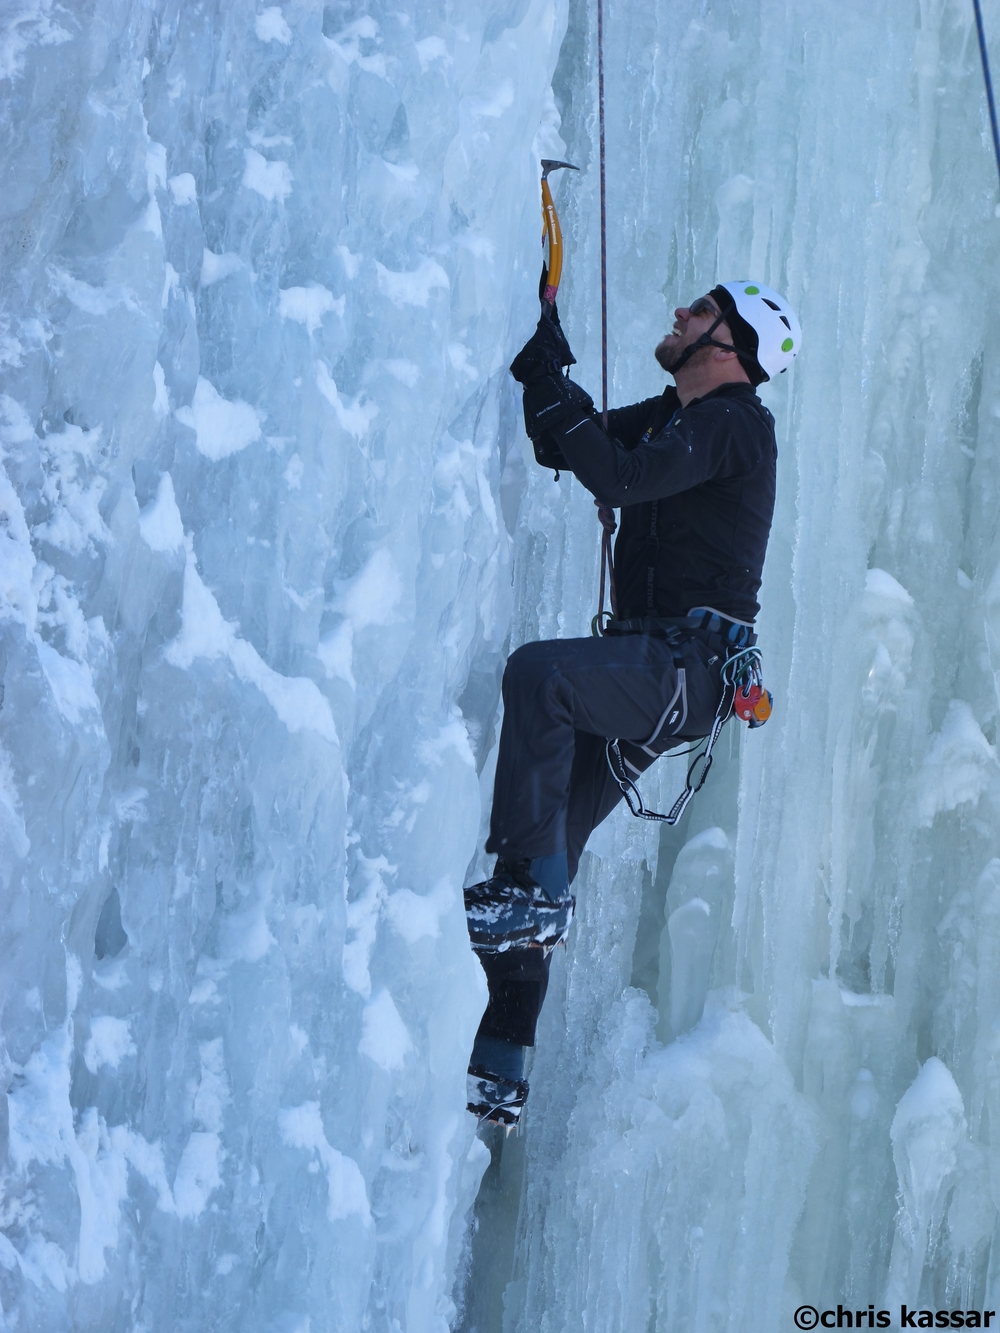 Bare_Climbing_ice_MT.jpg